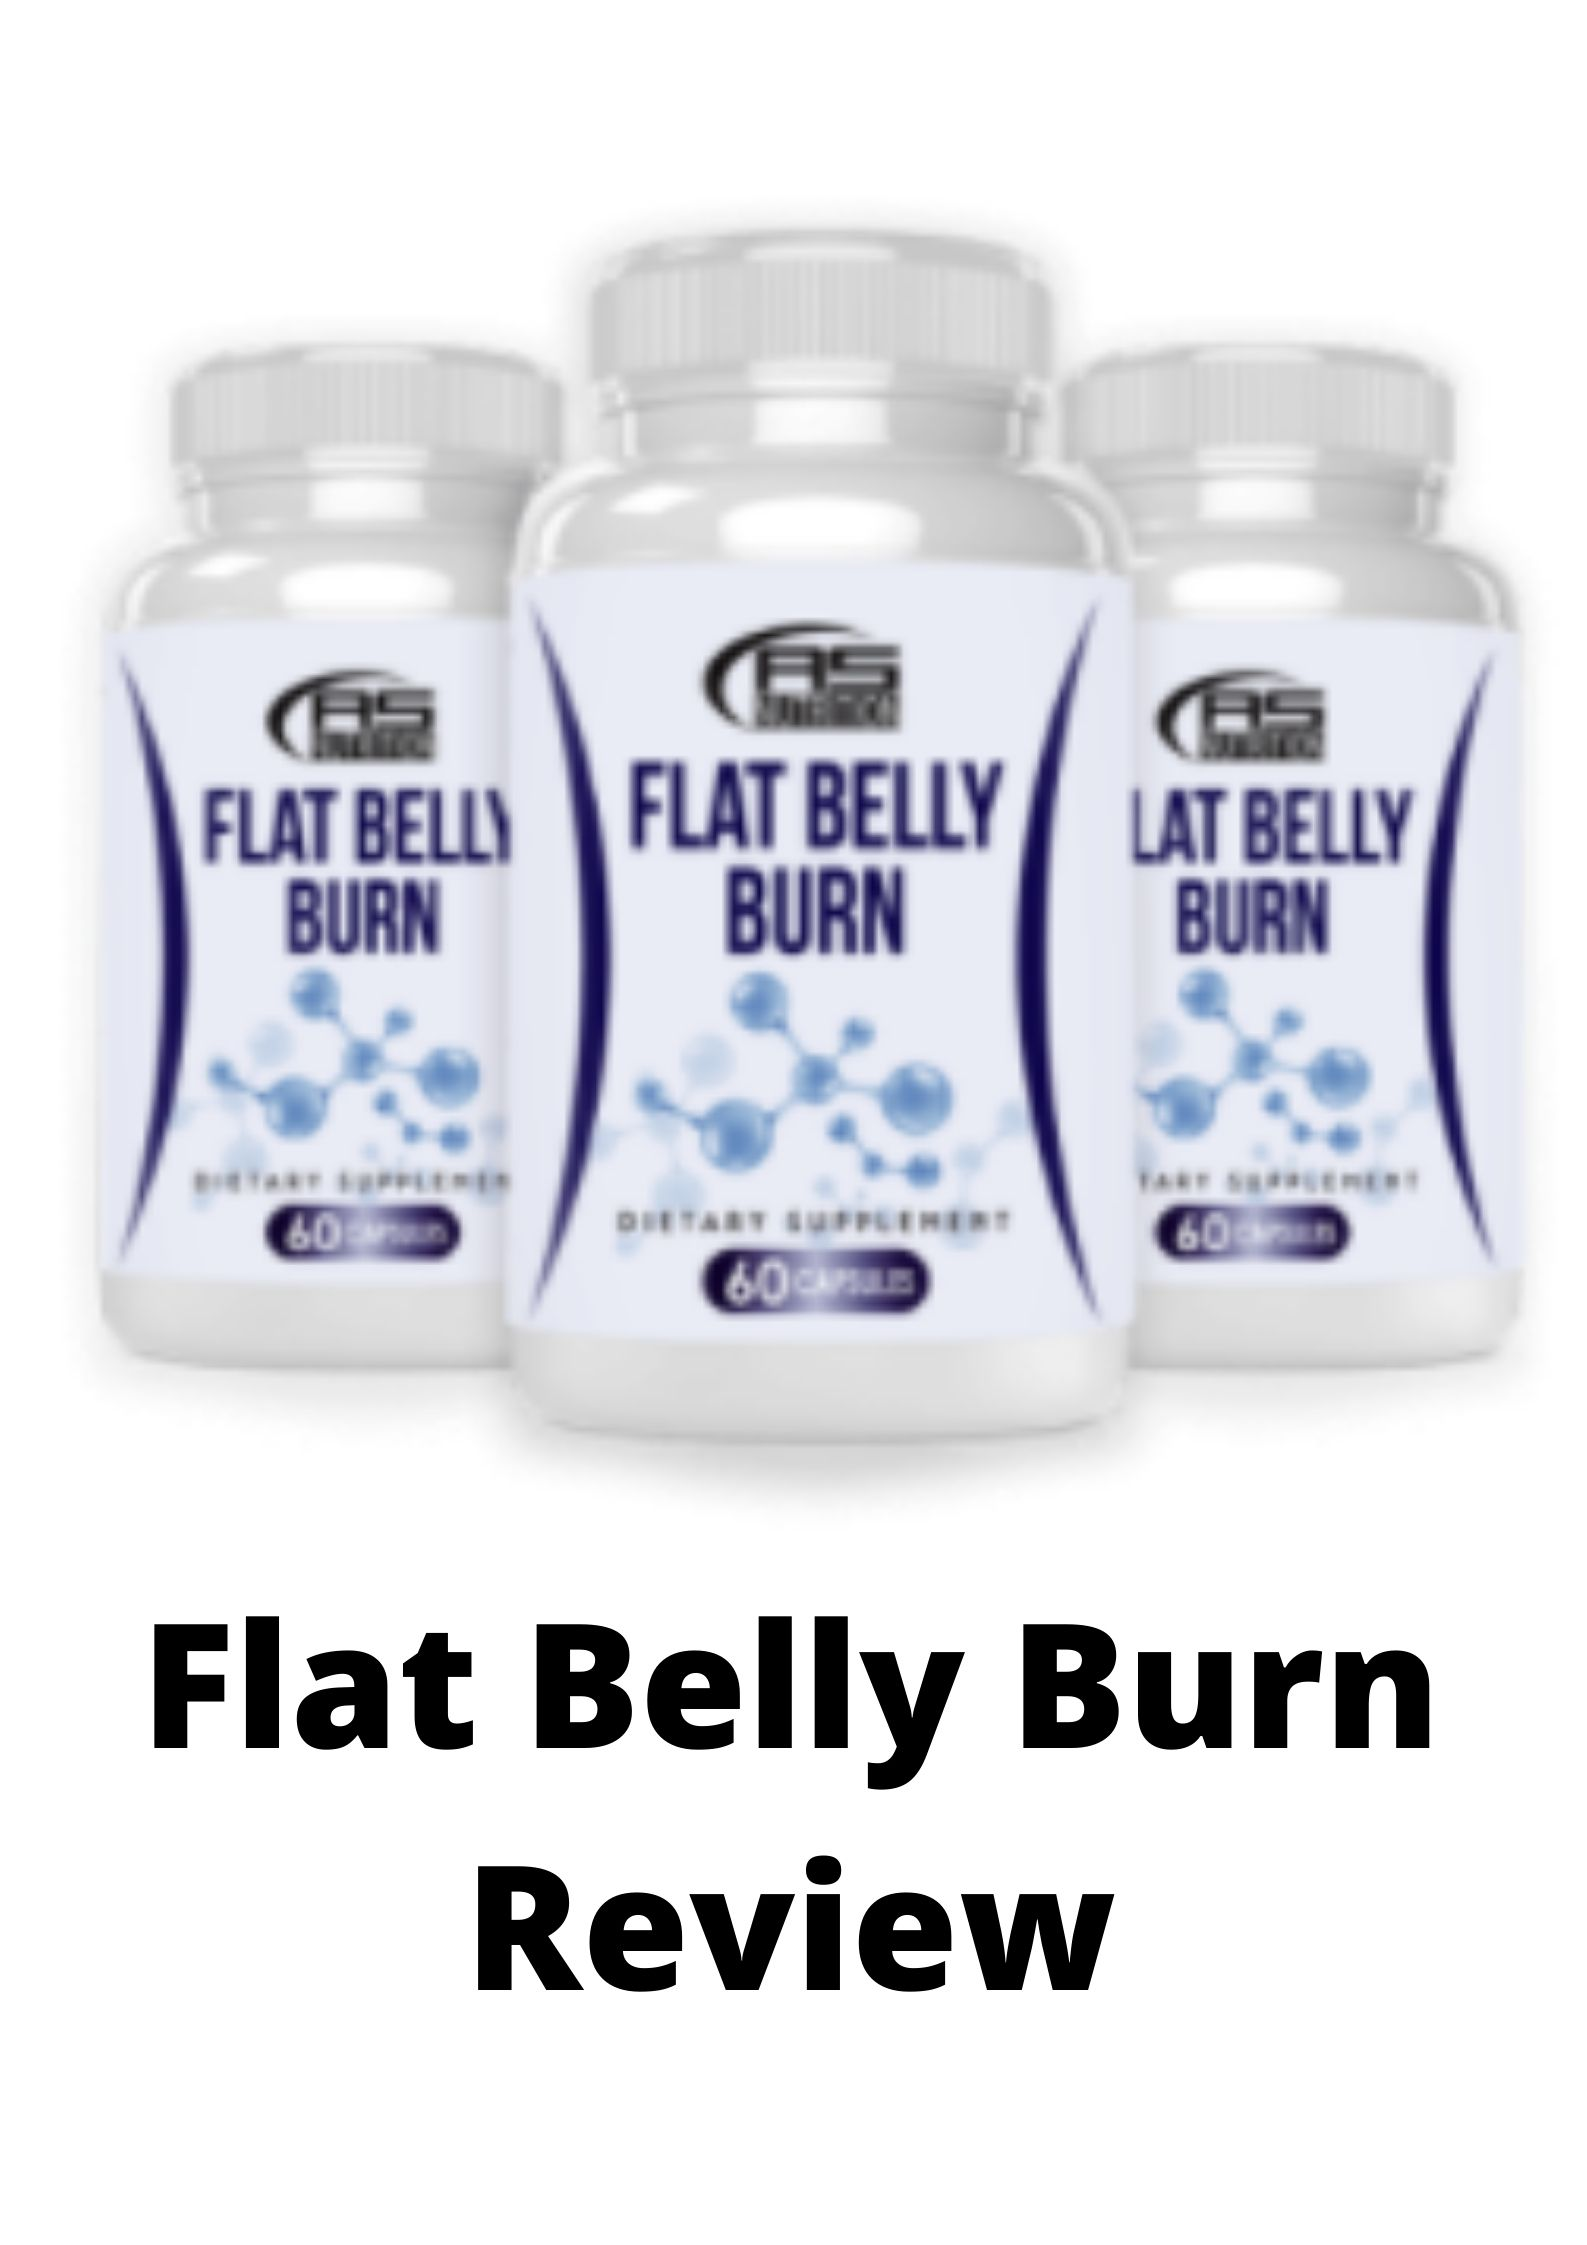 FLAT BELLY BURN REVIEW: KNOW THE FACTS